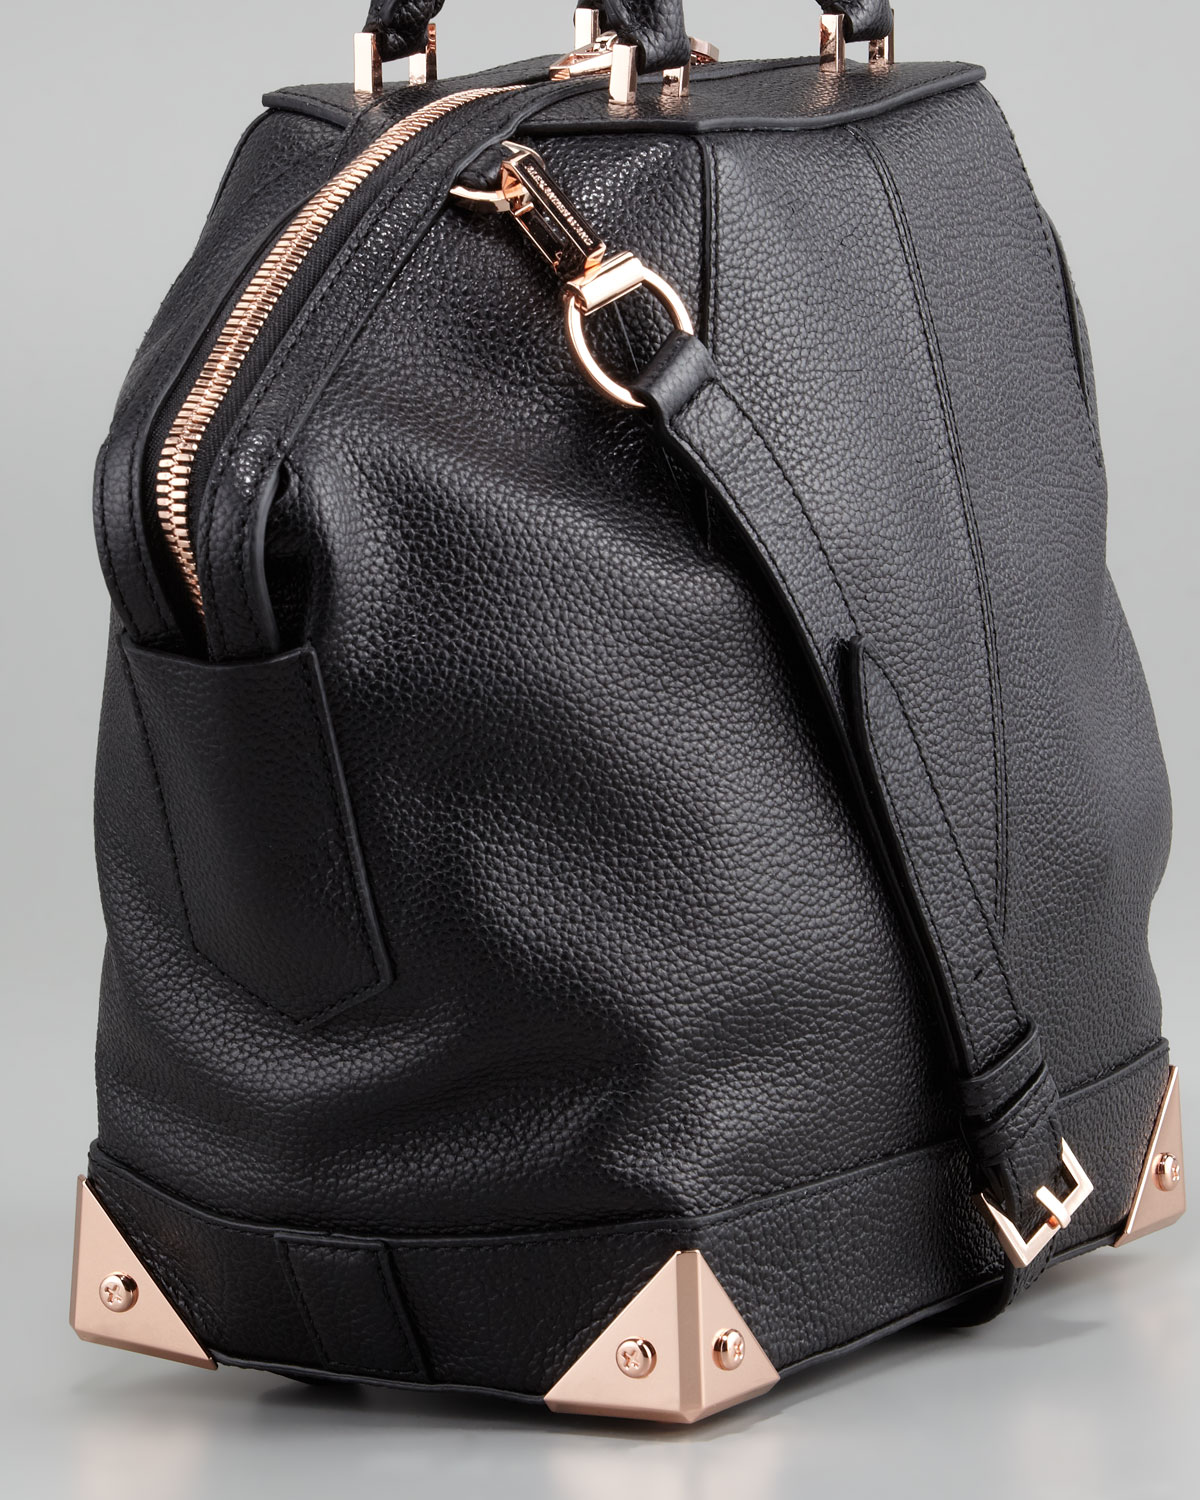 5150ccacf10e Lyst - Alexander Wang Emile Small Dome Bag in Black